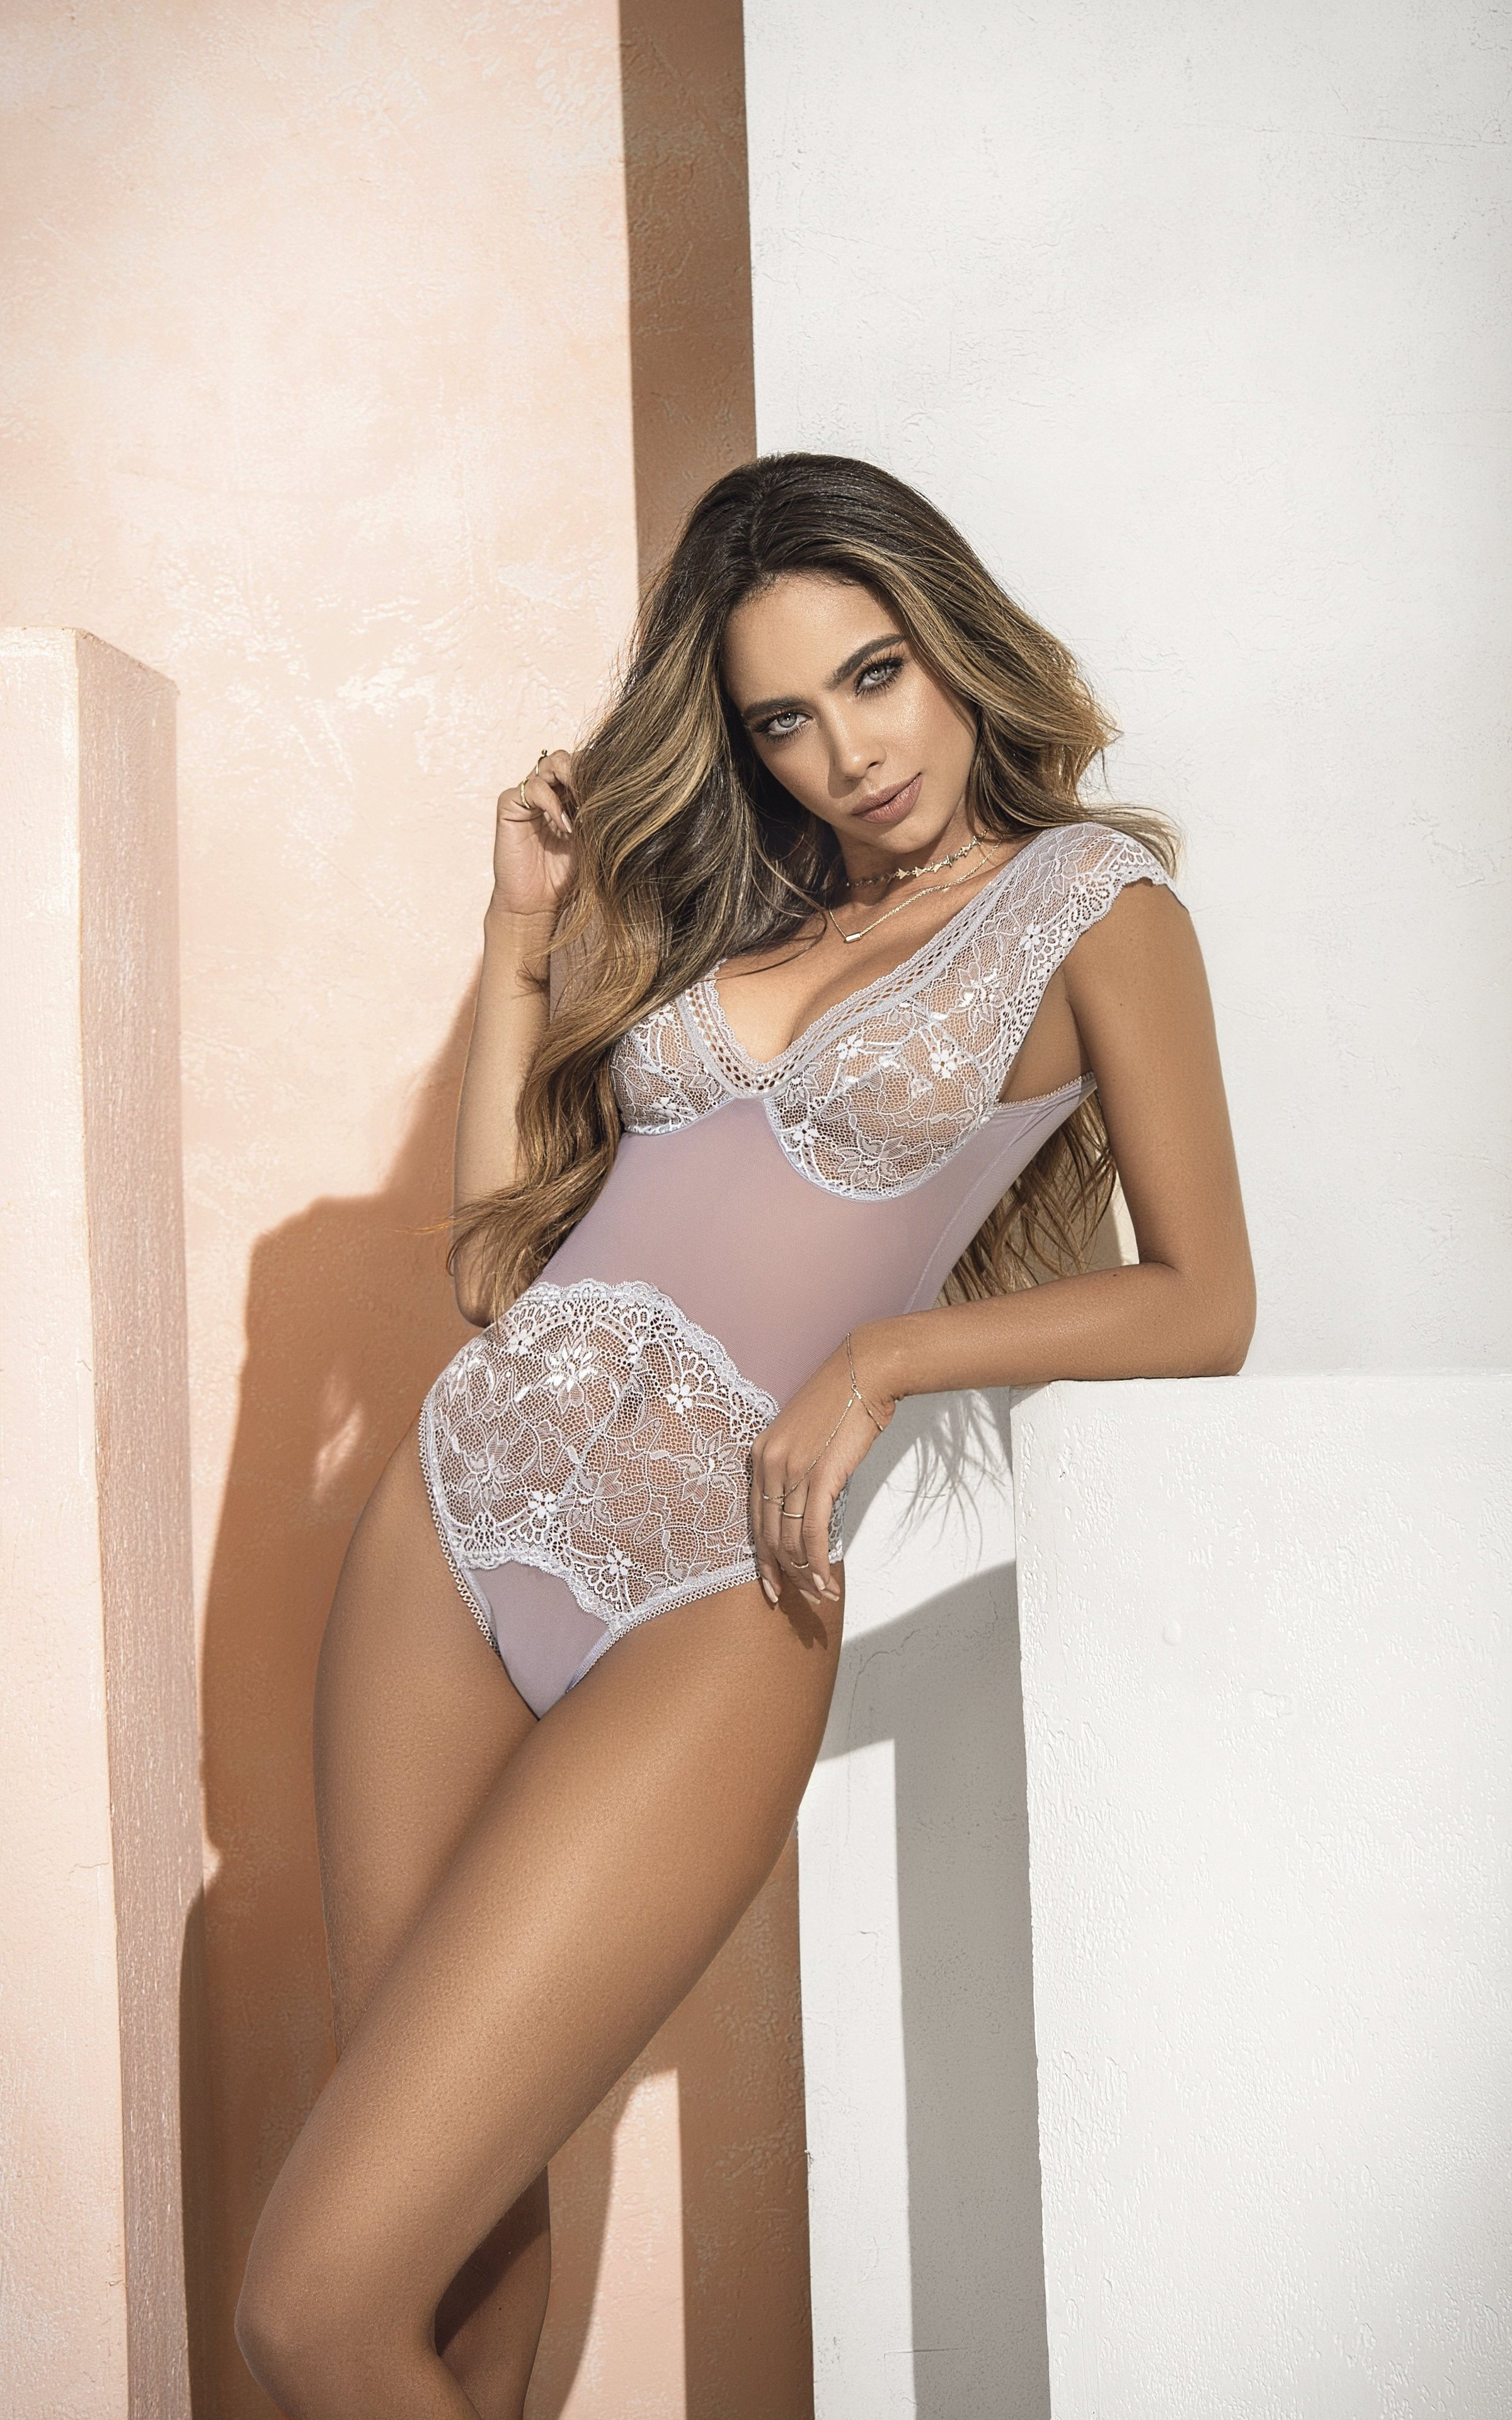 cool lingerie model wearing see through clothes